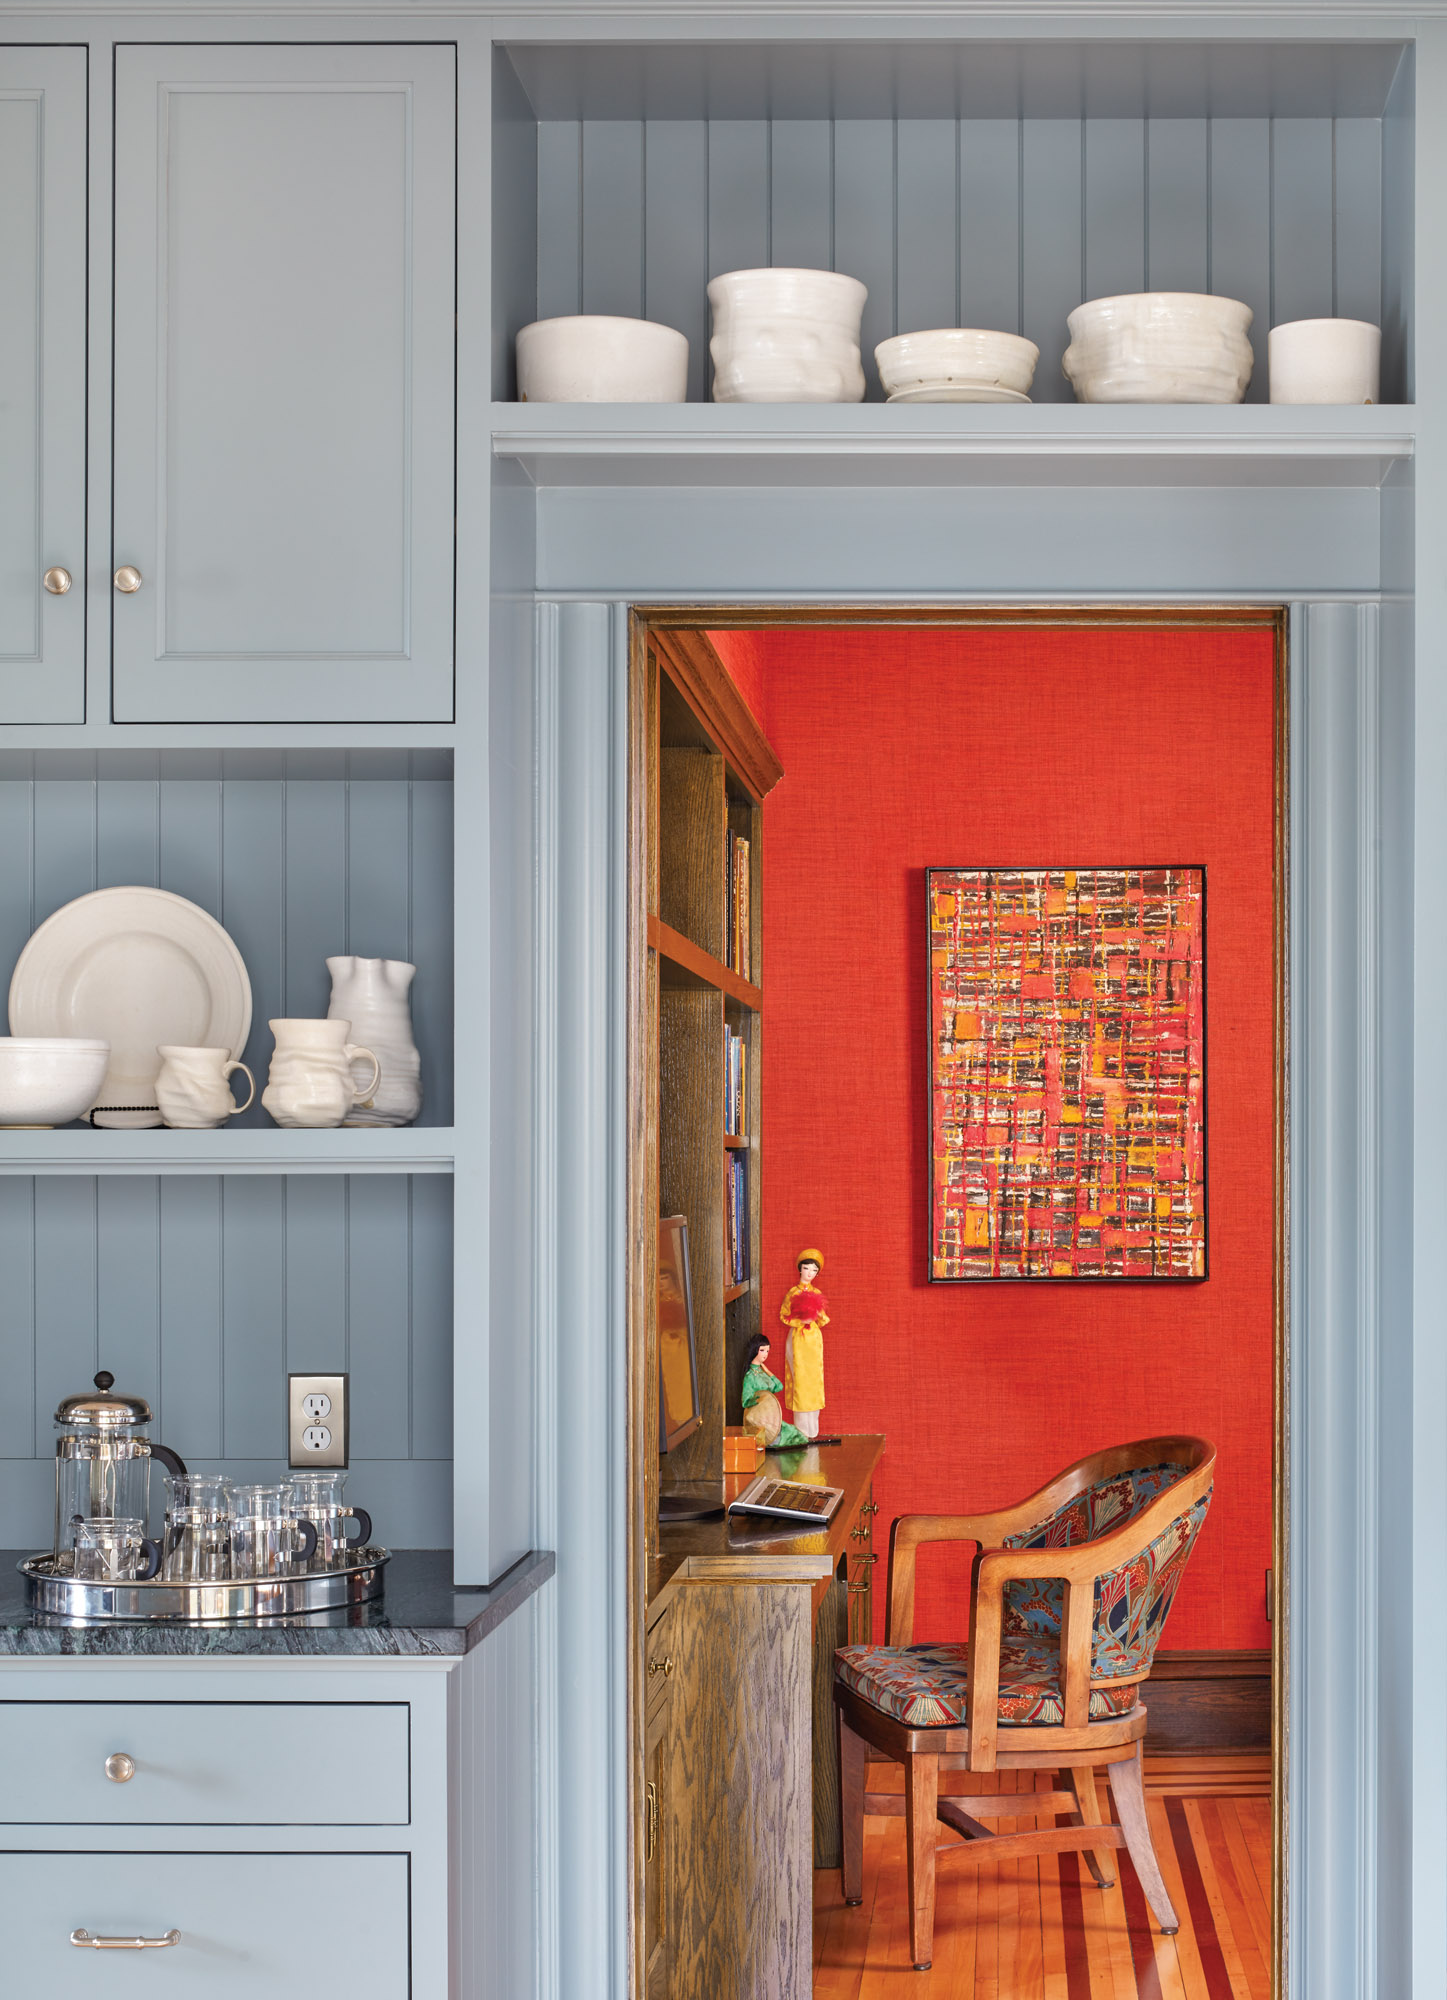 Separated from the kitchen by a pocket door, the family room now has a wall of oak built-ins. The modern grasscloth wallcovering is a warm complement to the blue kitchen cabinets.